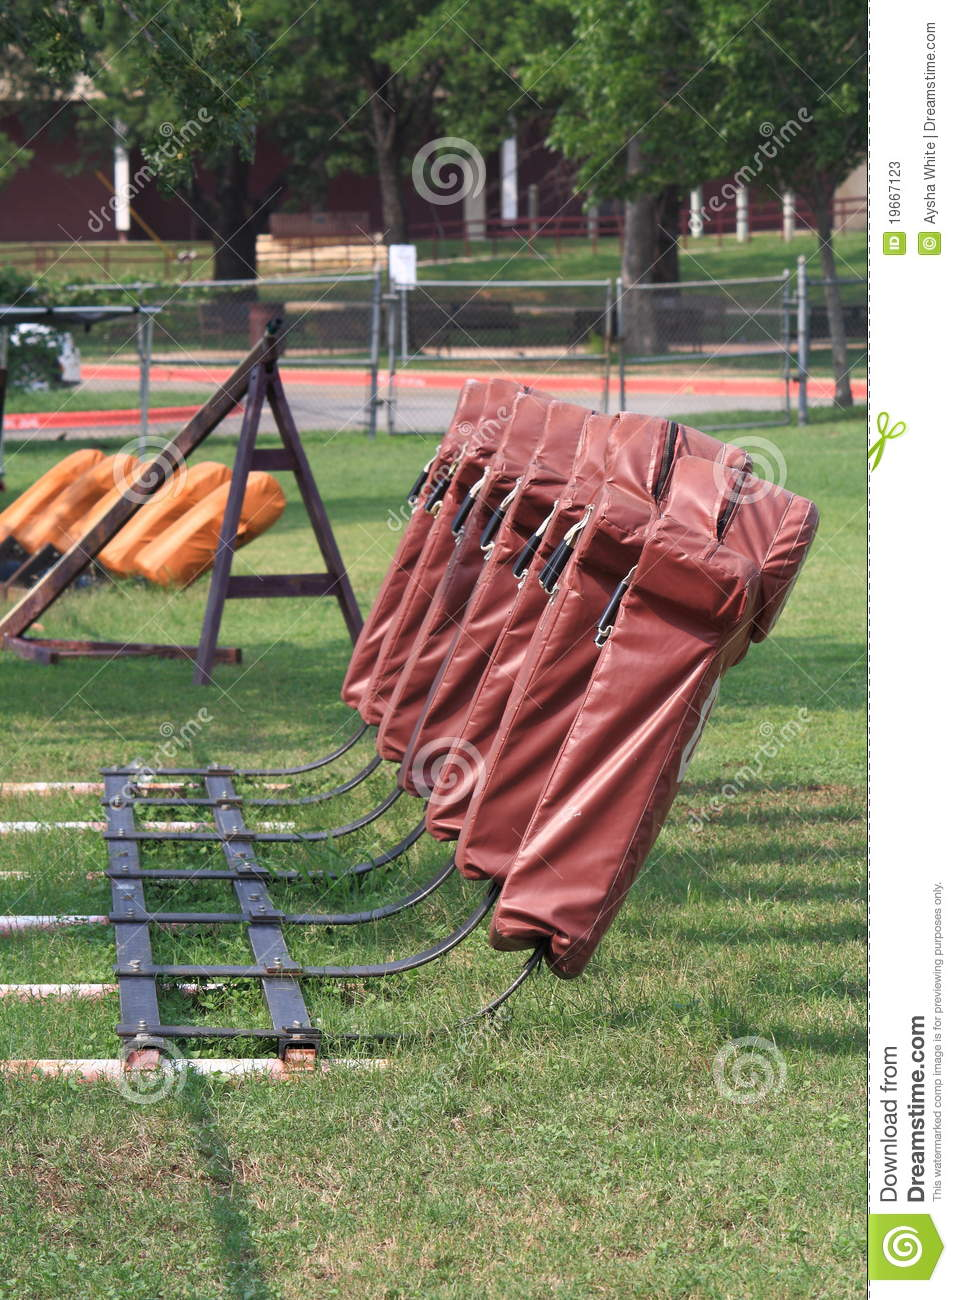 Football Sled Equipment On Field Stock Image Image Of